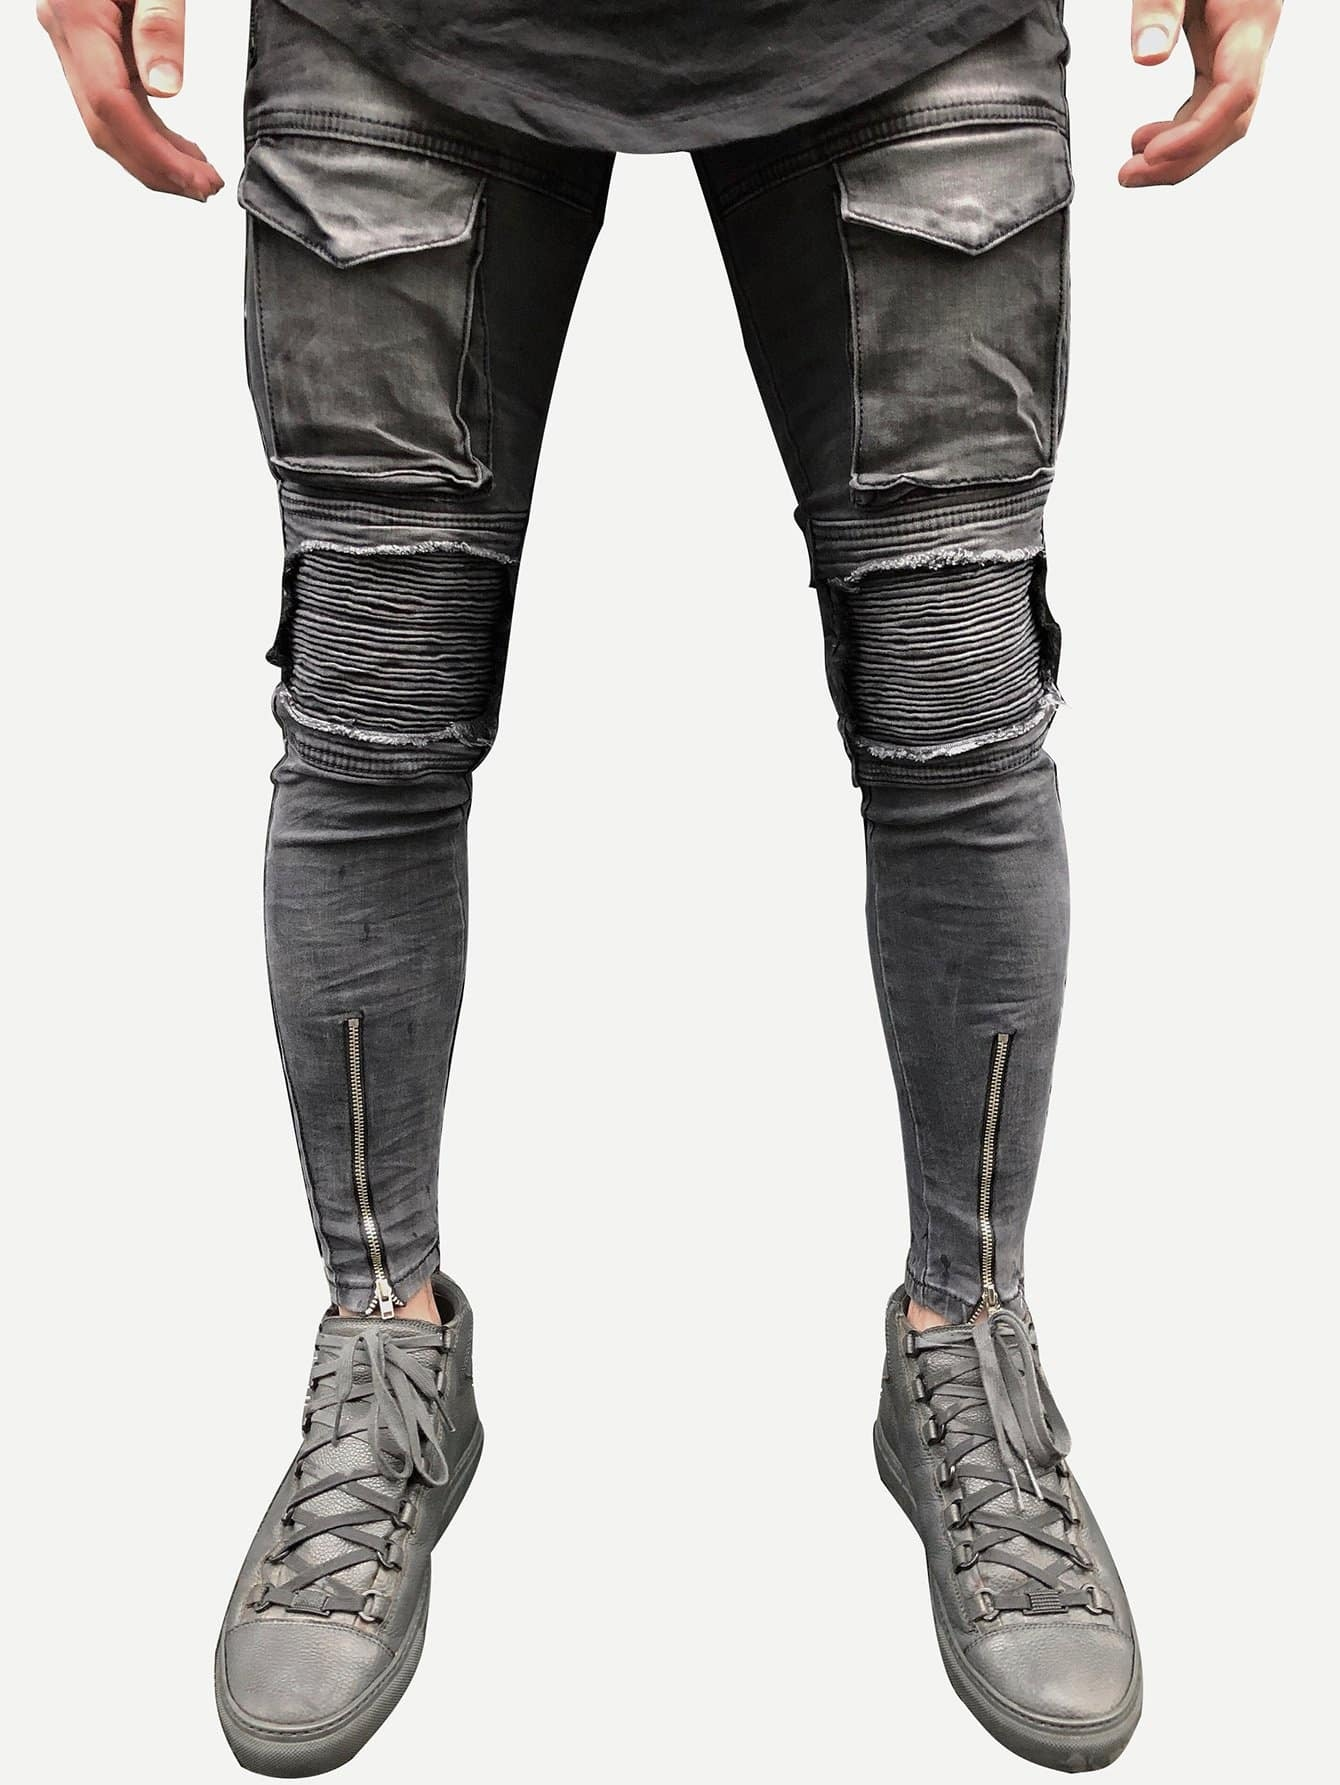 Men Zip And Pocket Decoration Destroyed Skinny Jeans 2017 new new distressed men jeans slim elastic hip hop zip pocket jeans men casual biker jeans straight denim skinny men big siz